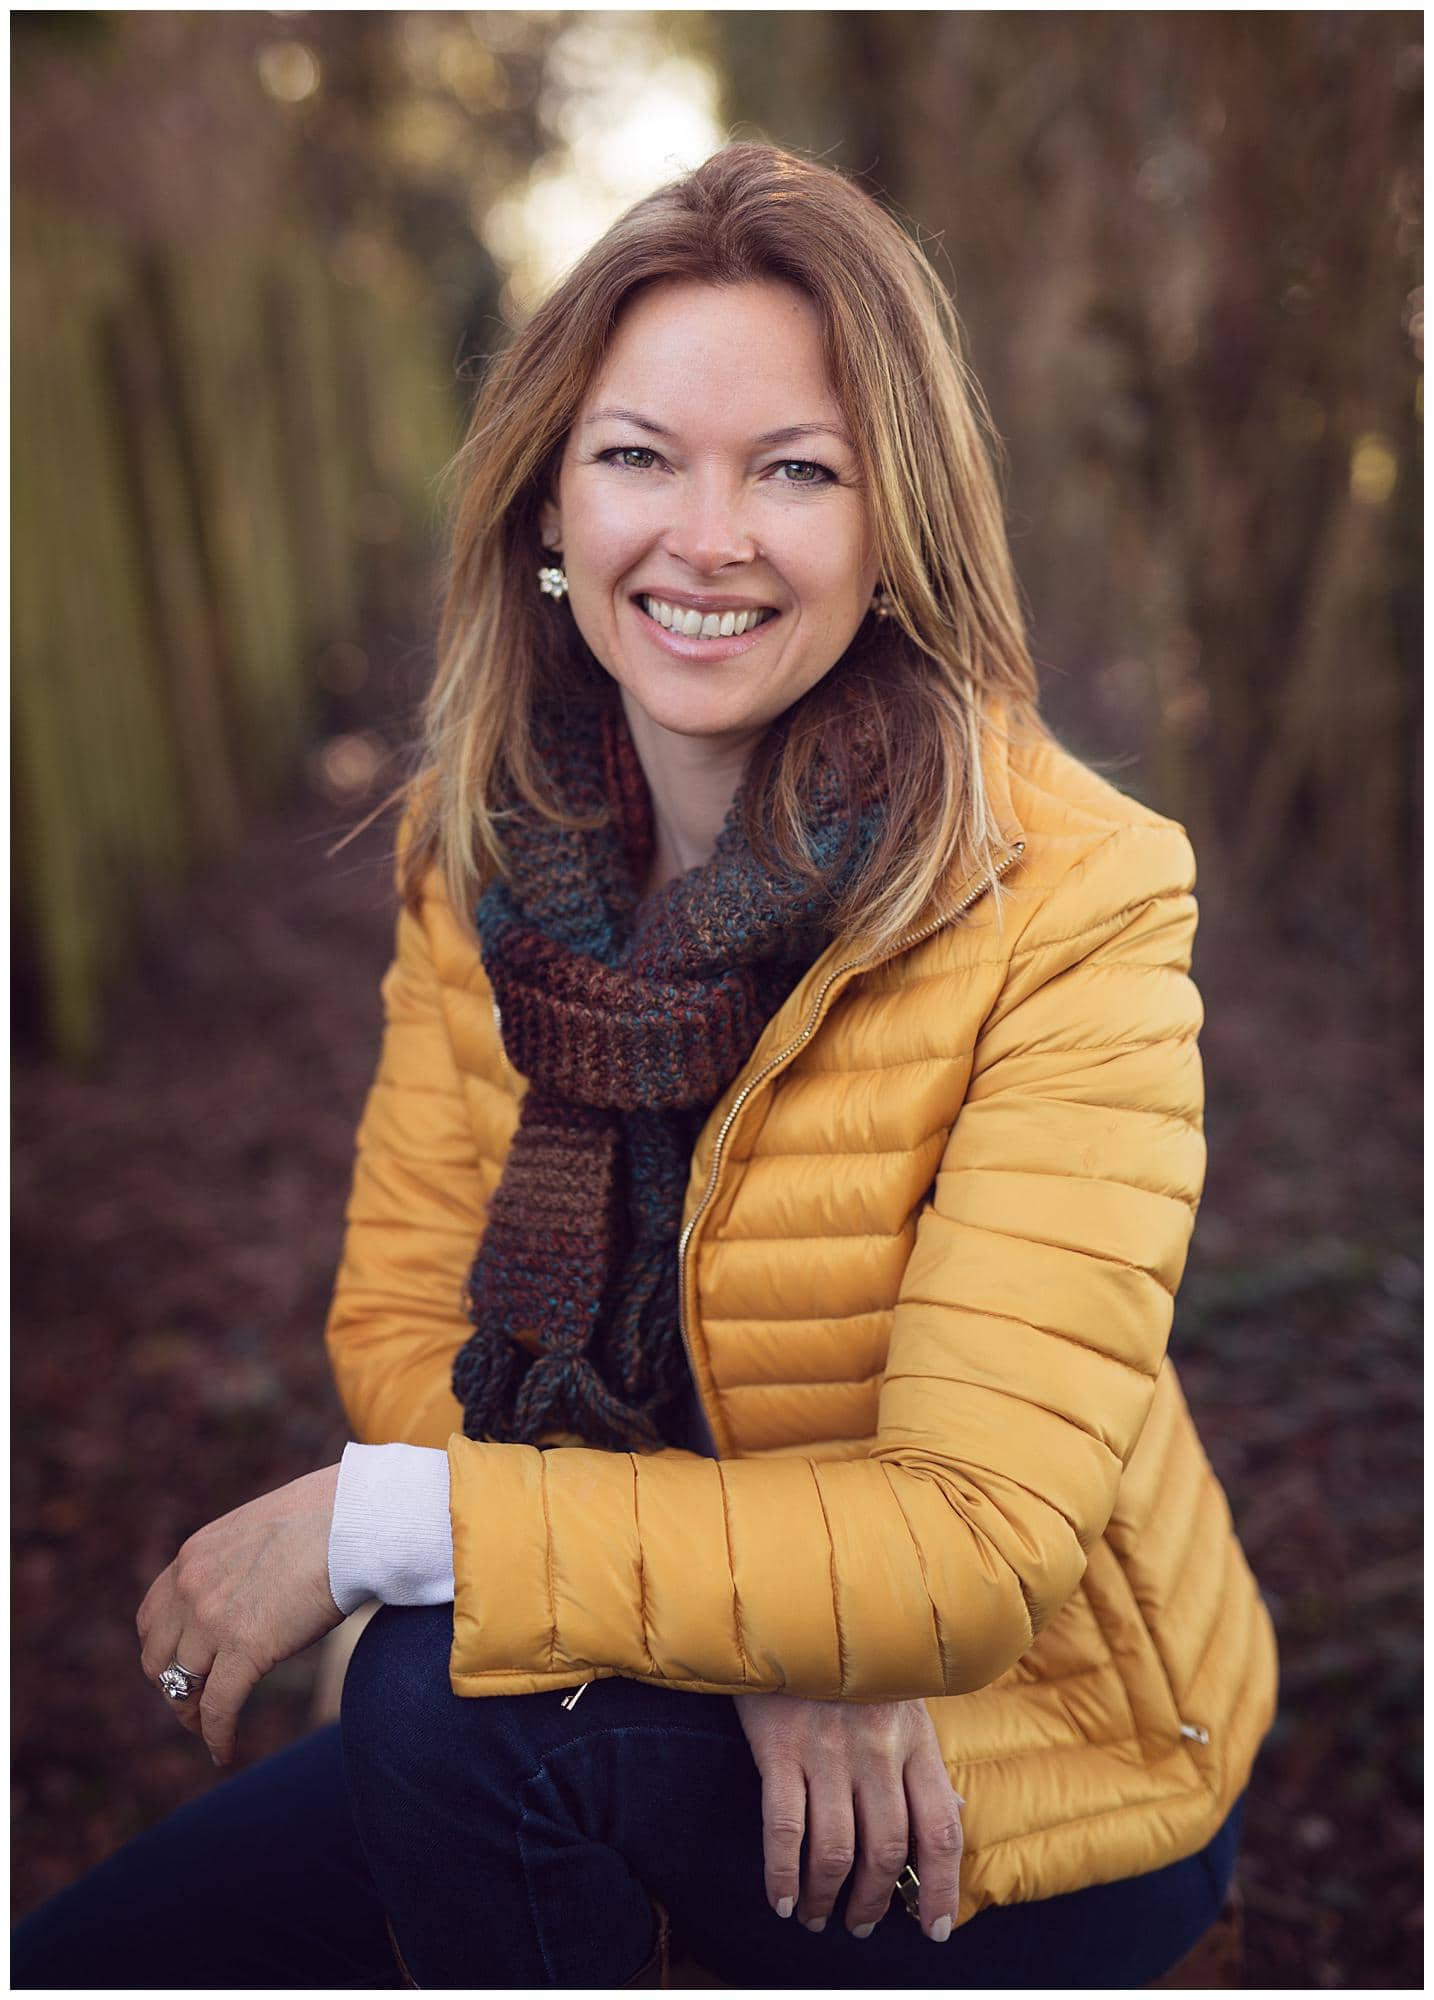 Woman in a yellow puff jacket poses for a Personal Branding Photoshoot in Suffolk